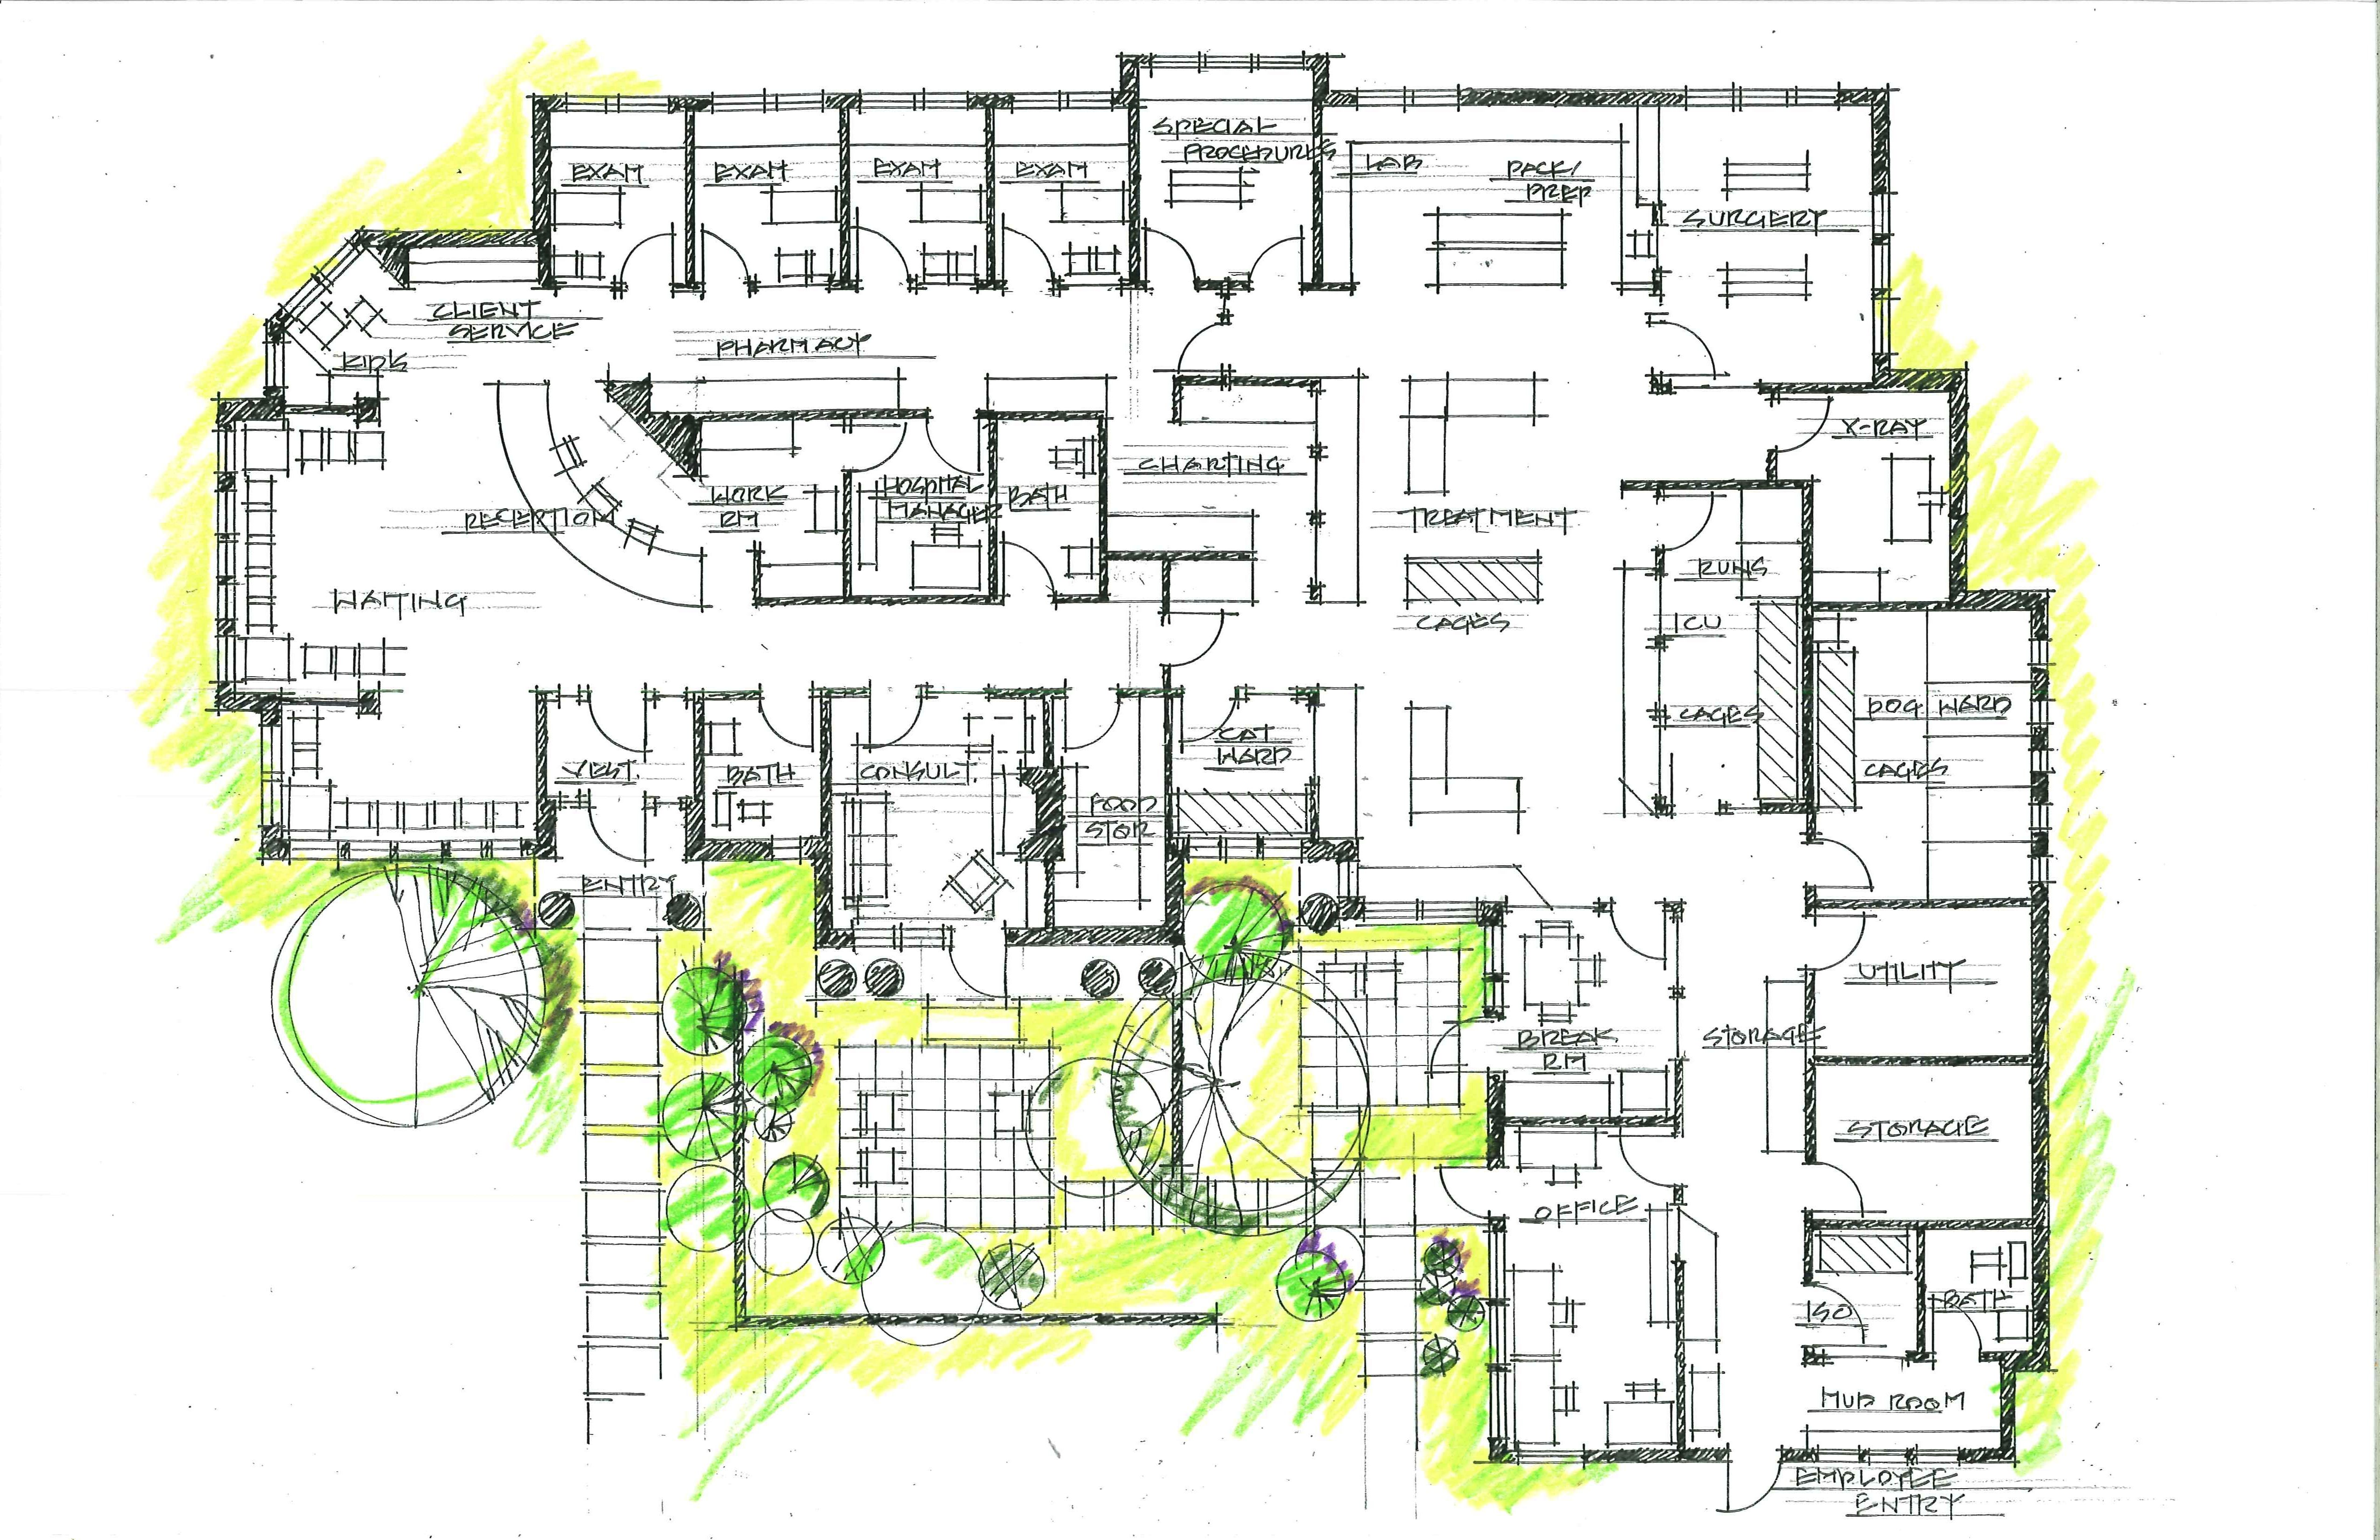 hospital layout plan szukaj w google architecture layouts hospital design hospital floor